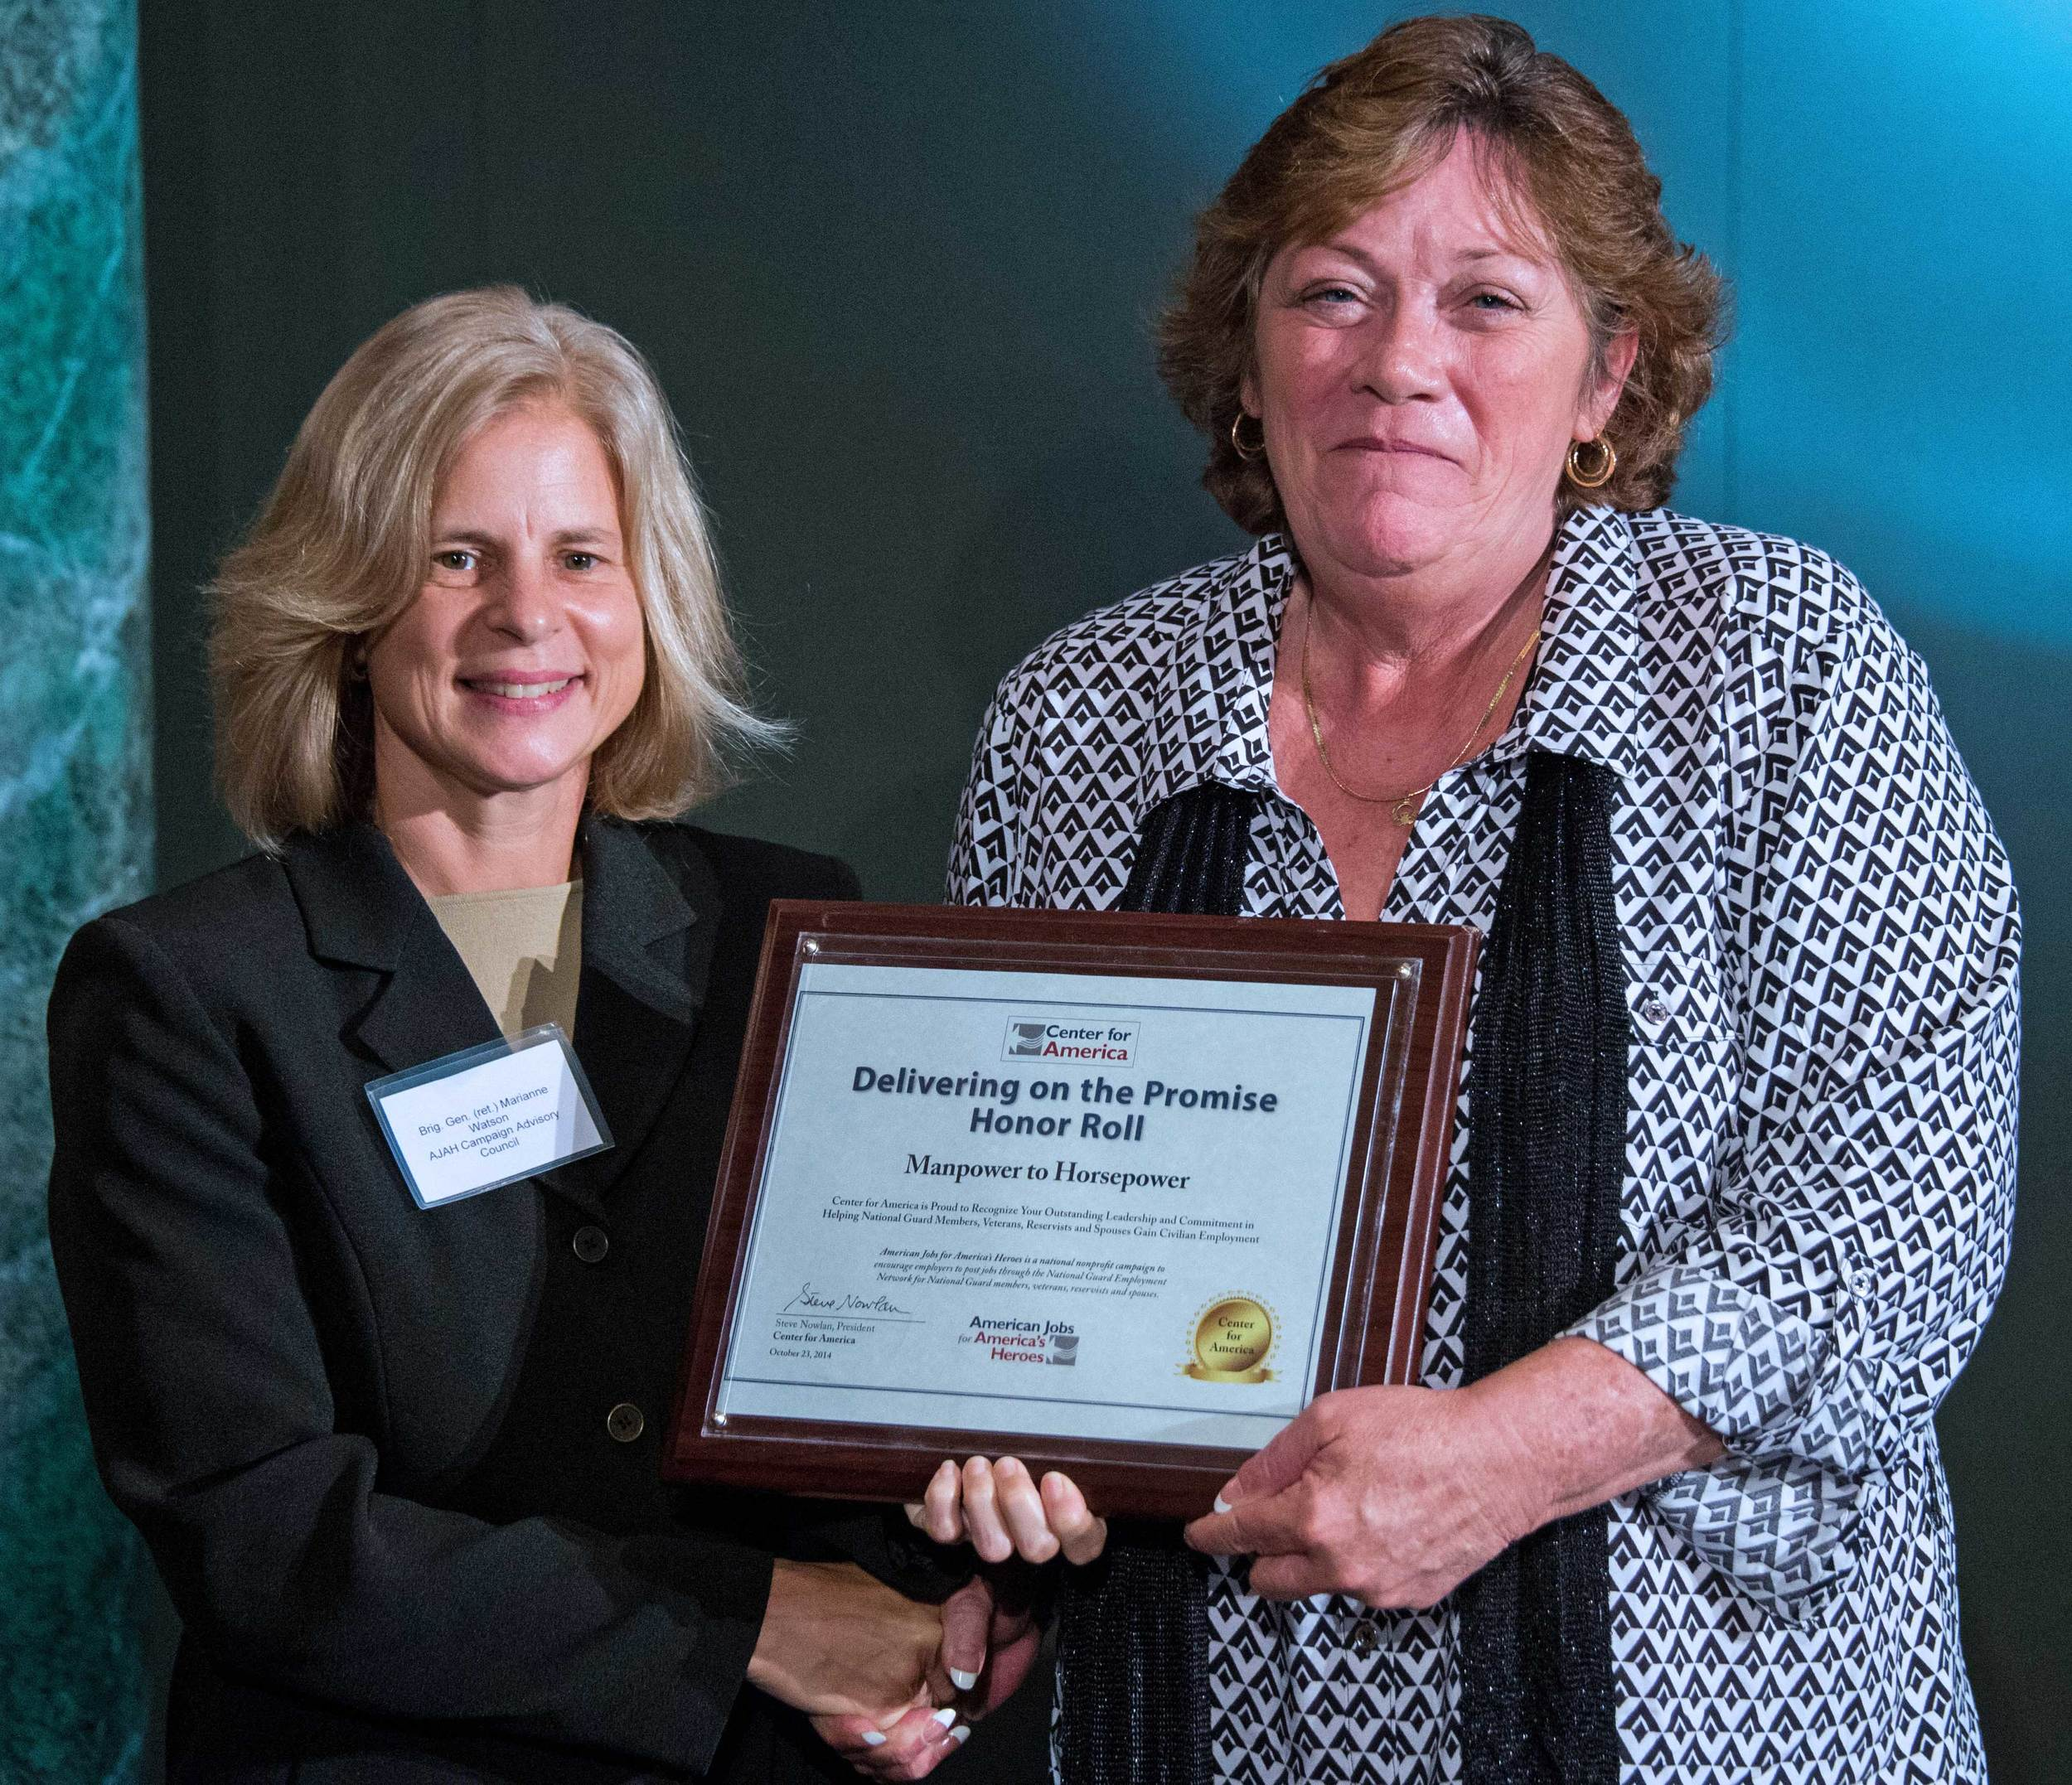 Brigadier General (ret) Marianne Watson presents the CFA Award to Sue Roberson, Founder and Director, Manpower to Horsepower